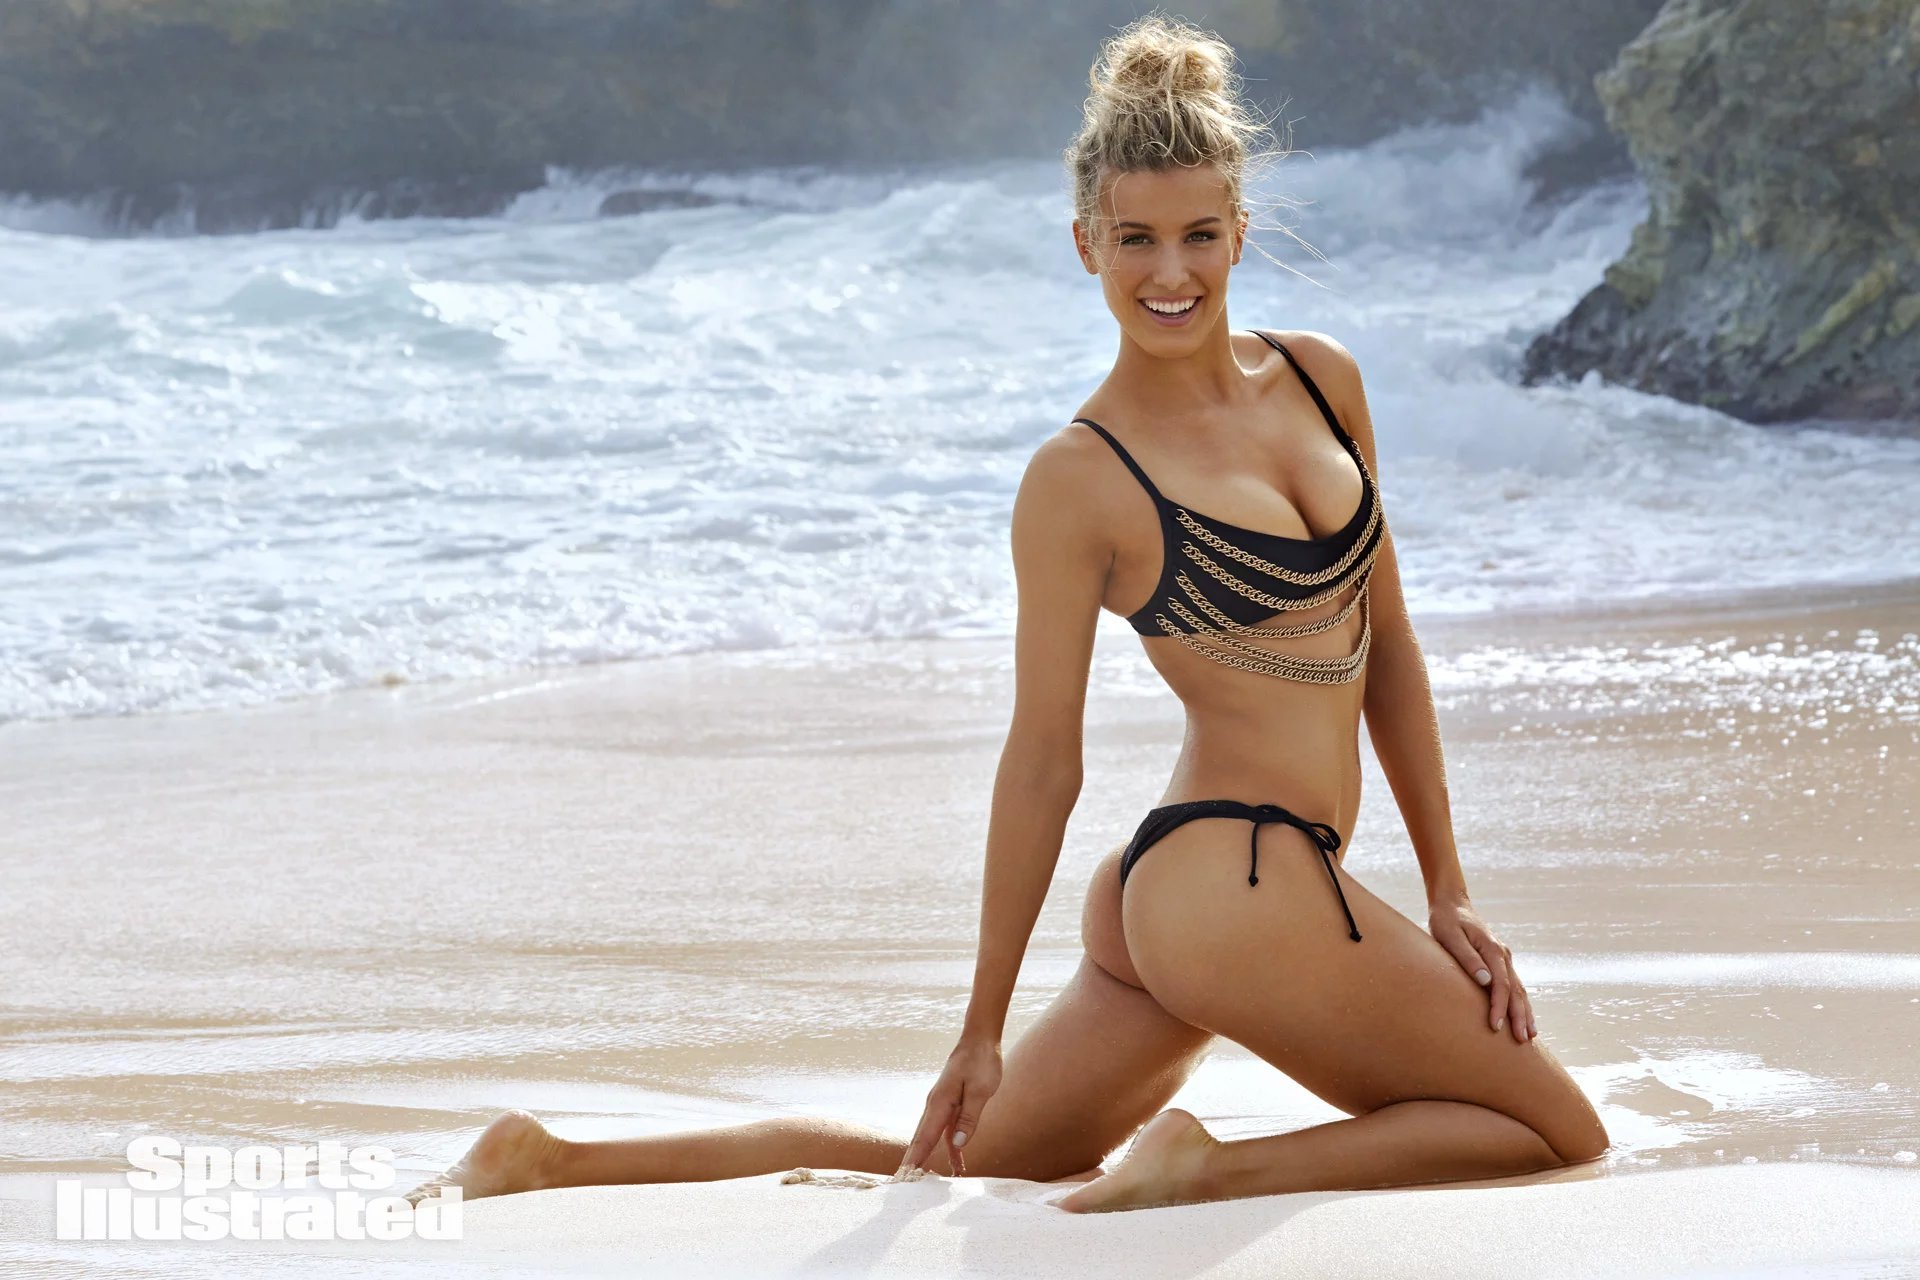 60+ Hot Pictures of Eugenie Bouchard – Gorgeous Tennis Player Will ...